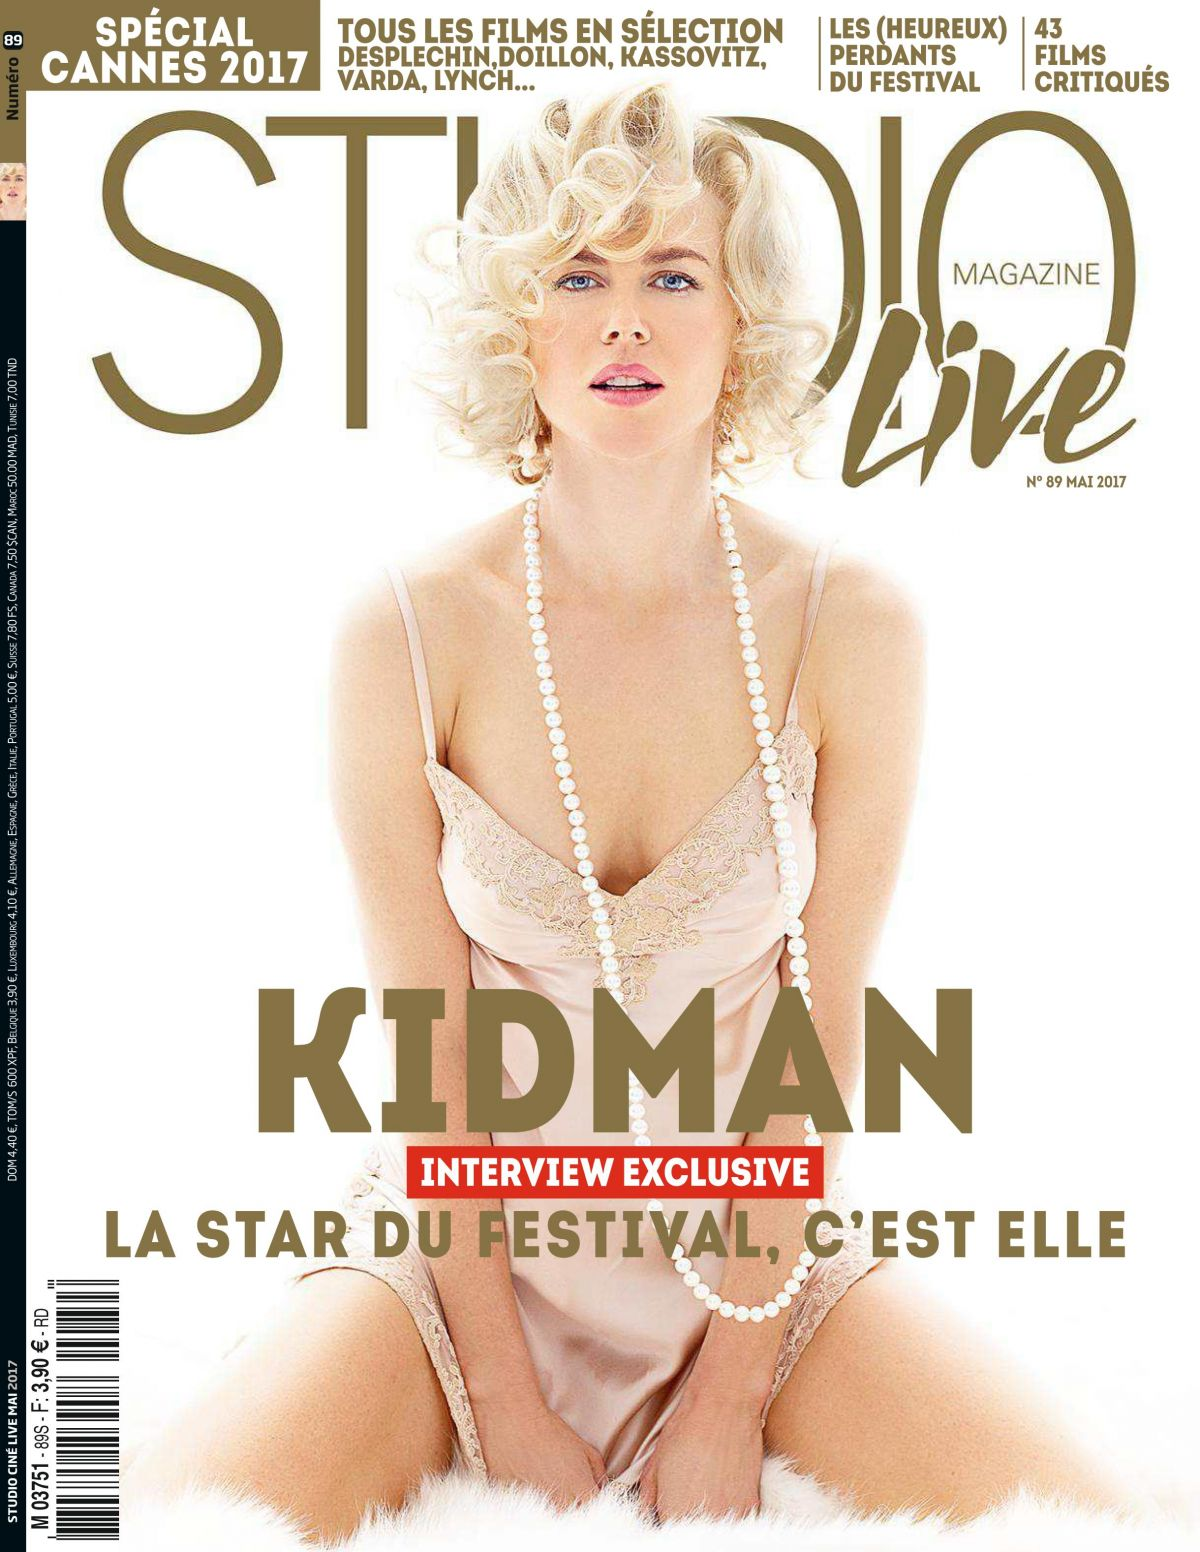 NICOLE KIDMAN in Studio Cinelive Magazine, France May 2017 Issue